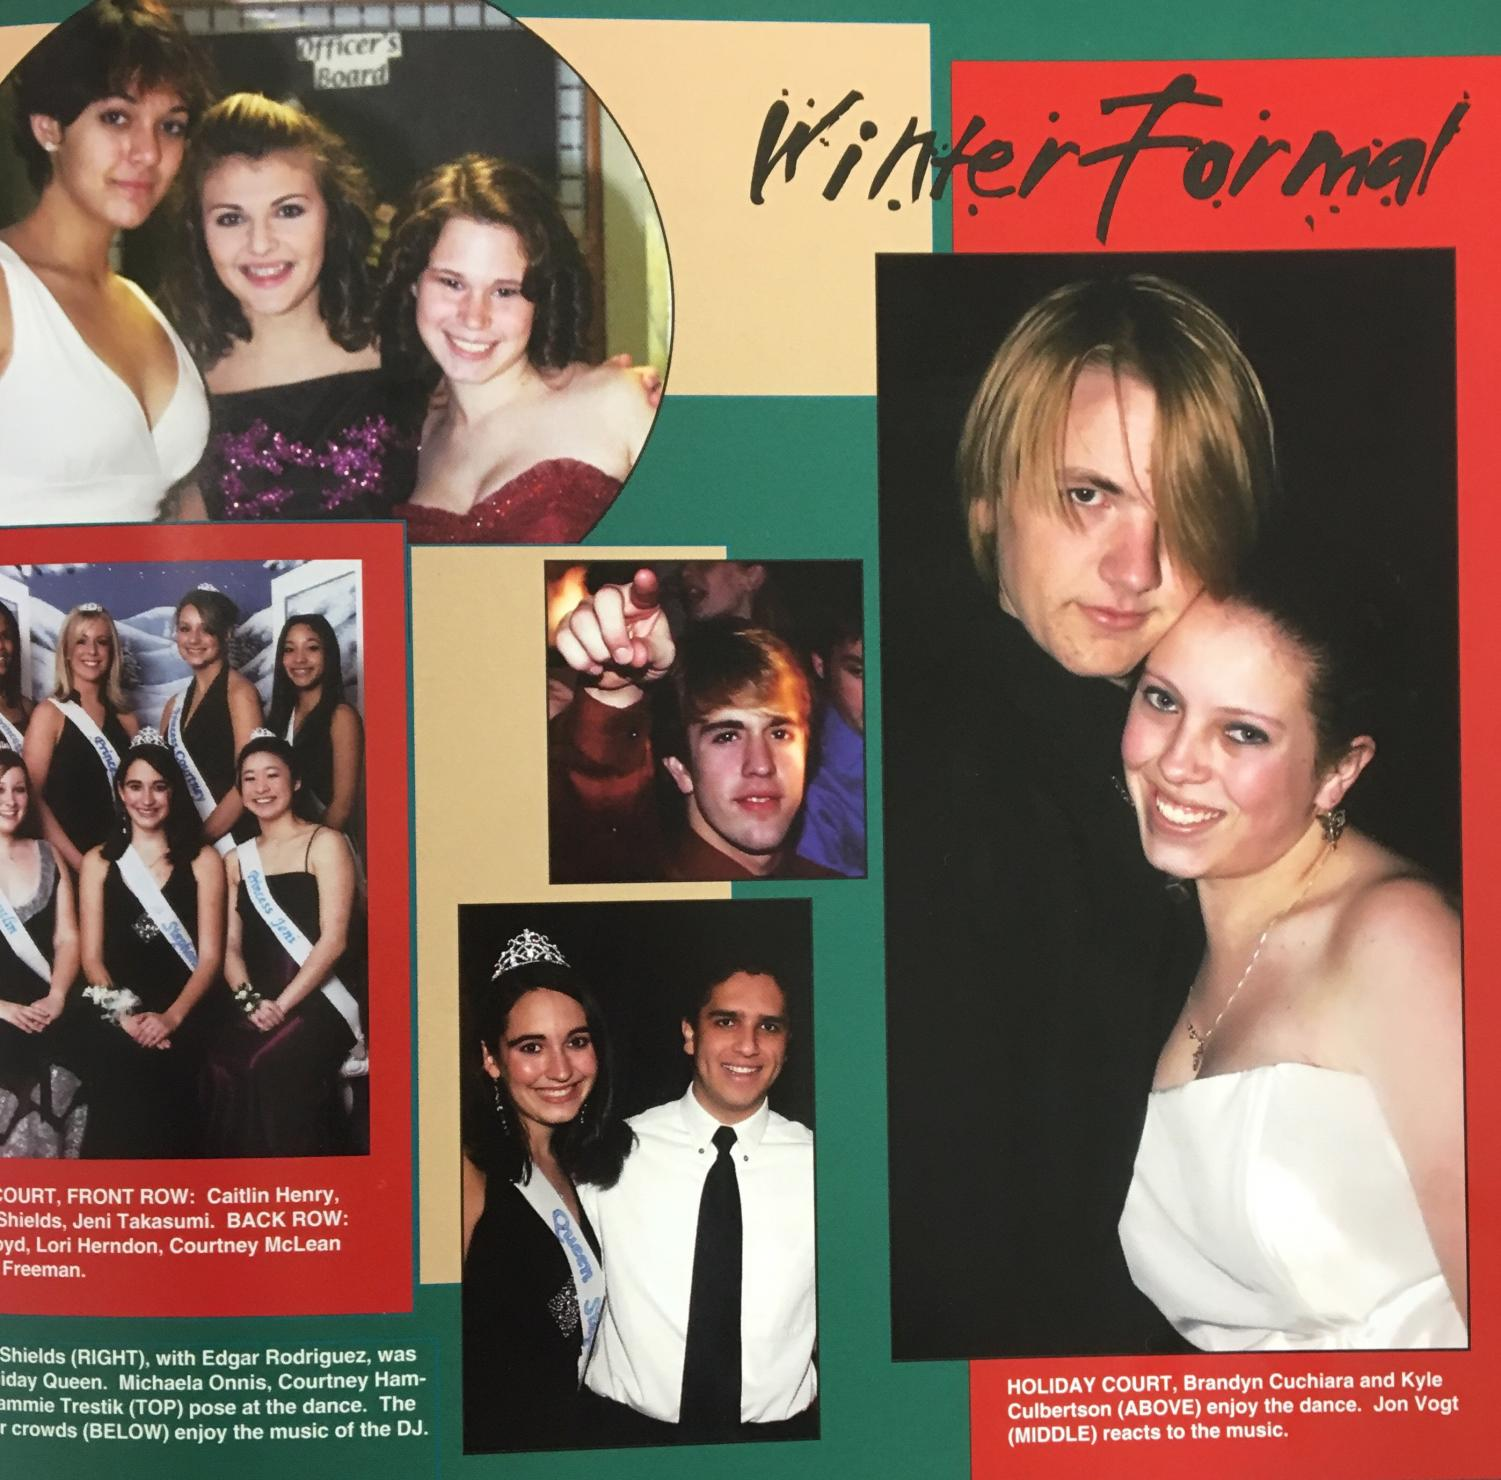 Throw back photos of the winter formal exist. In this 2006 yearbook page spread, it featured a dance and a holiday court.